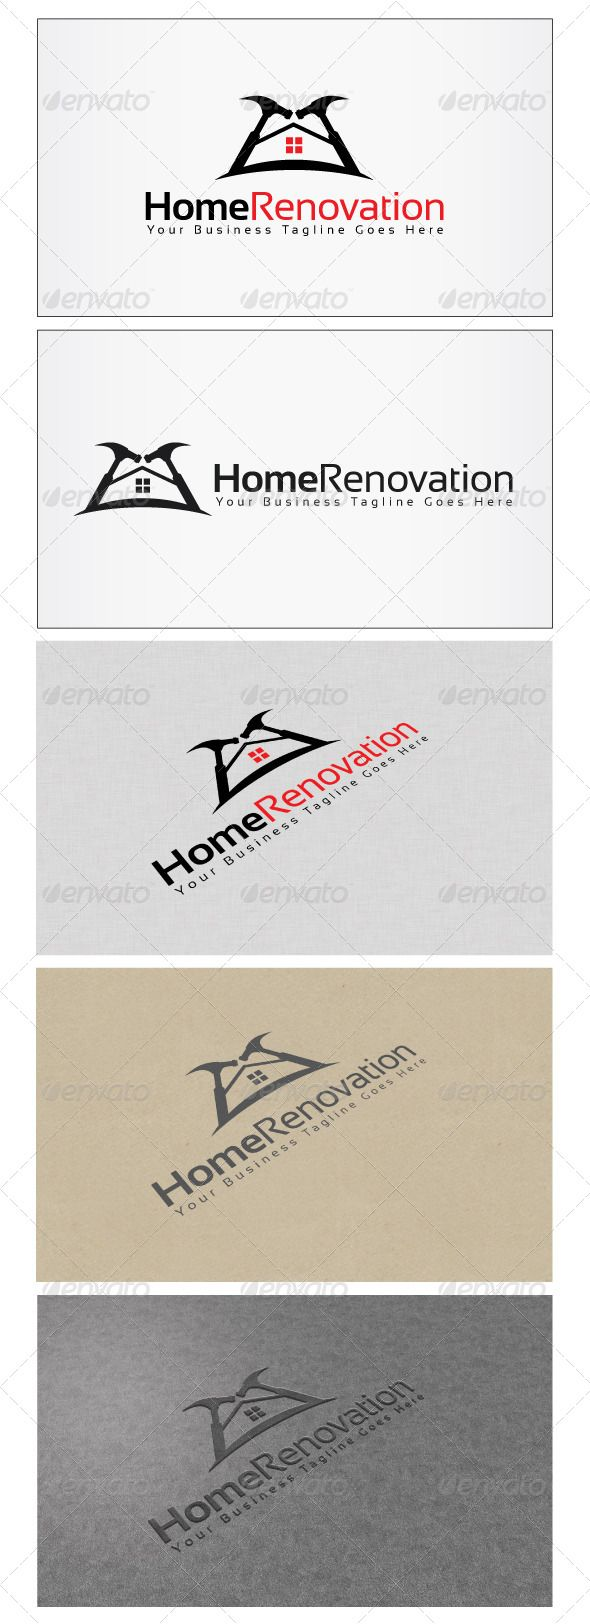 Home remodeling logo remodeling logo clipart - Home Renovation Logo Photoshop Psd Construction Carpentry Available Here Https